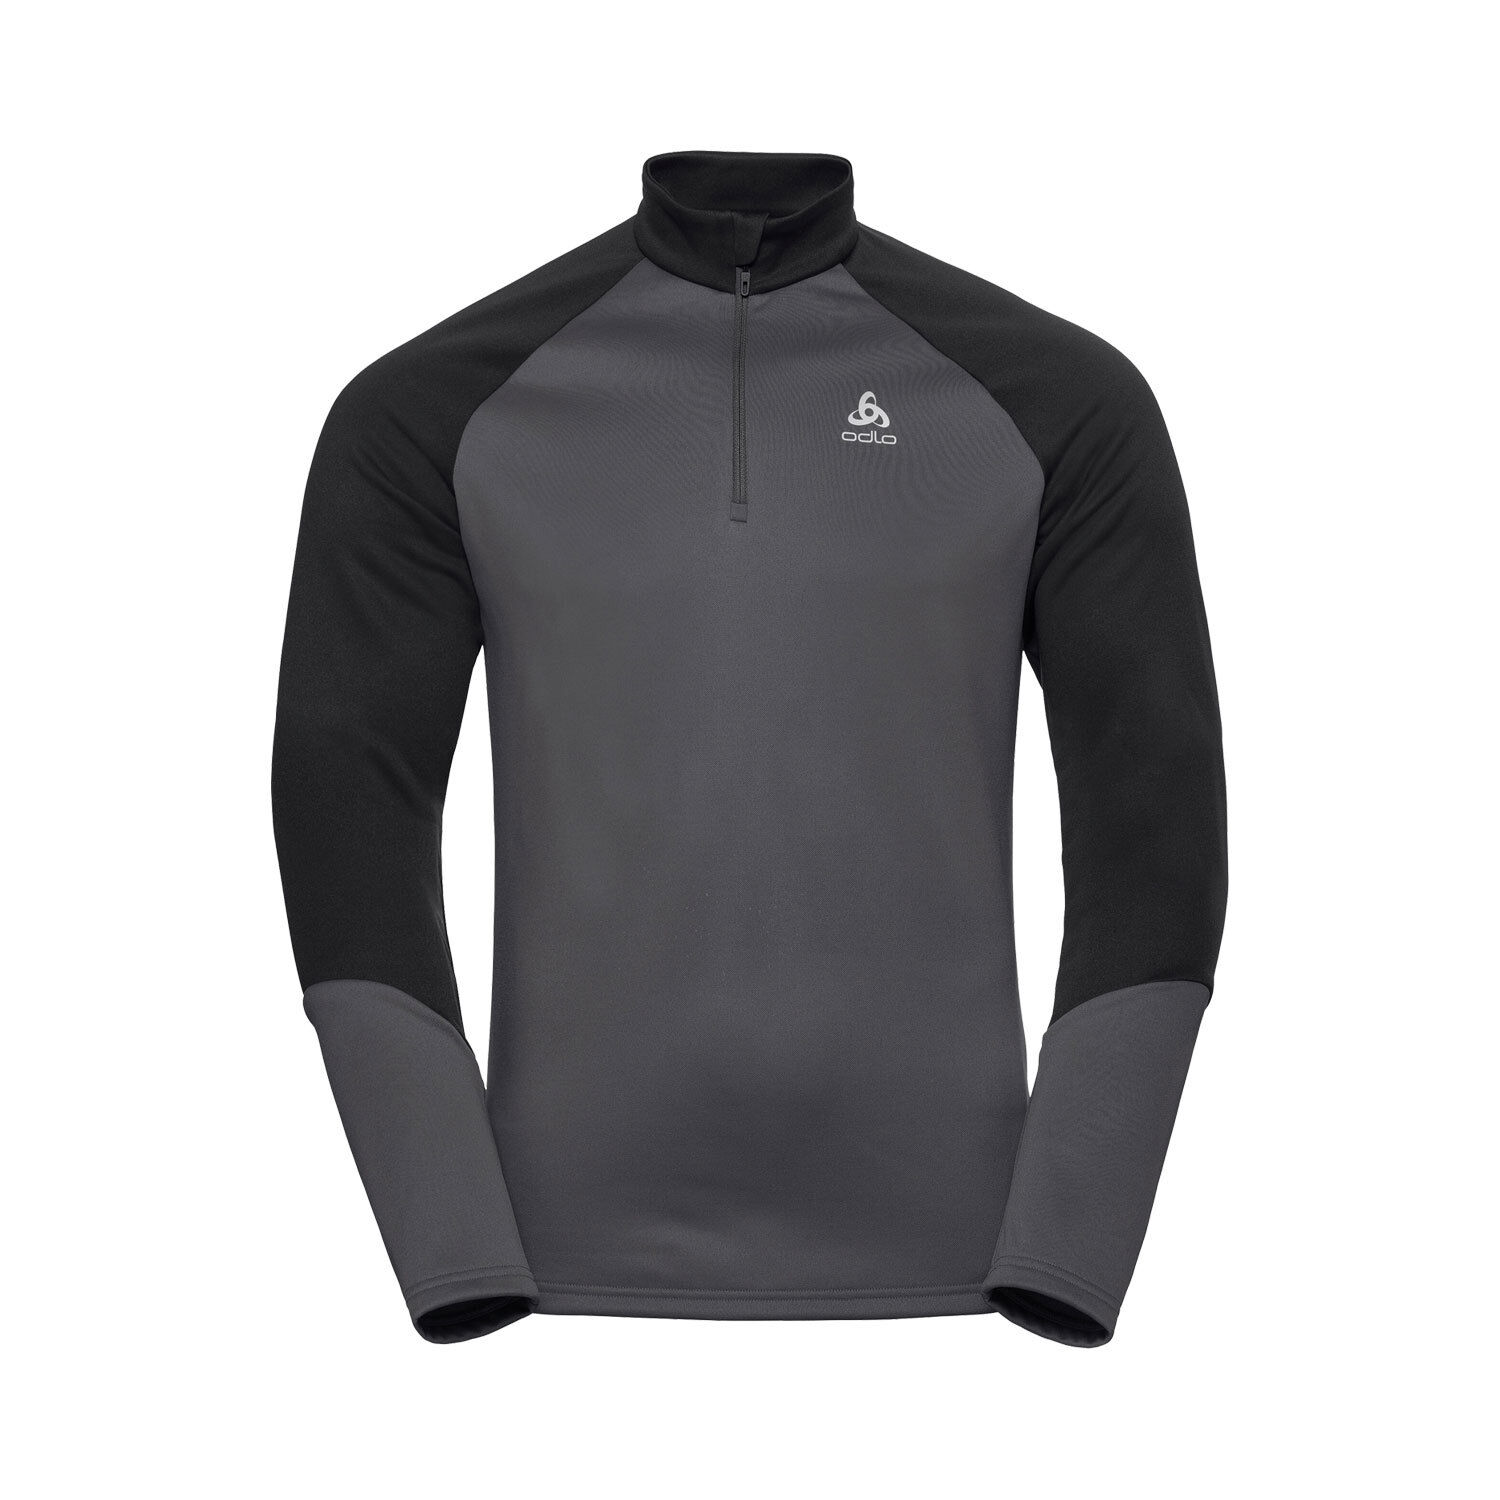 Odlo Shirt Planches 1/2 Zip Herren Midlayer Shirt Odlo 1513d1